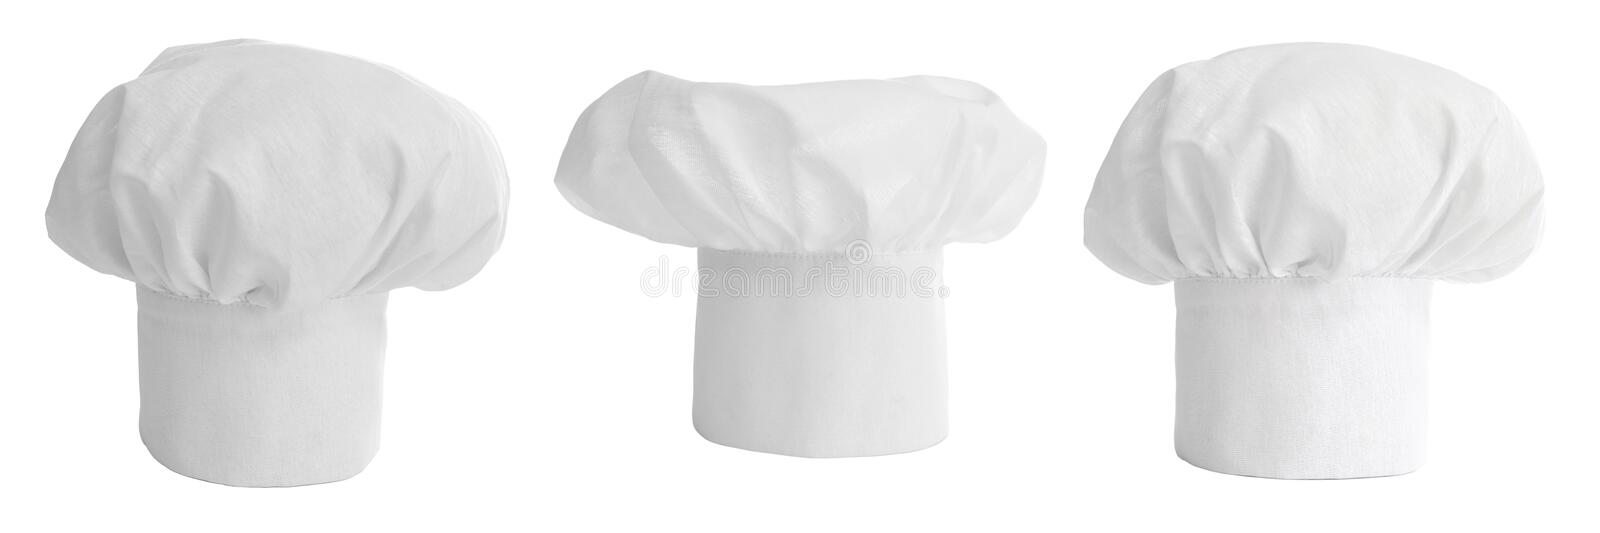 Set of cook hat or cap isolated royalty free stock photo